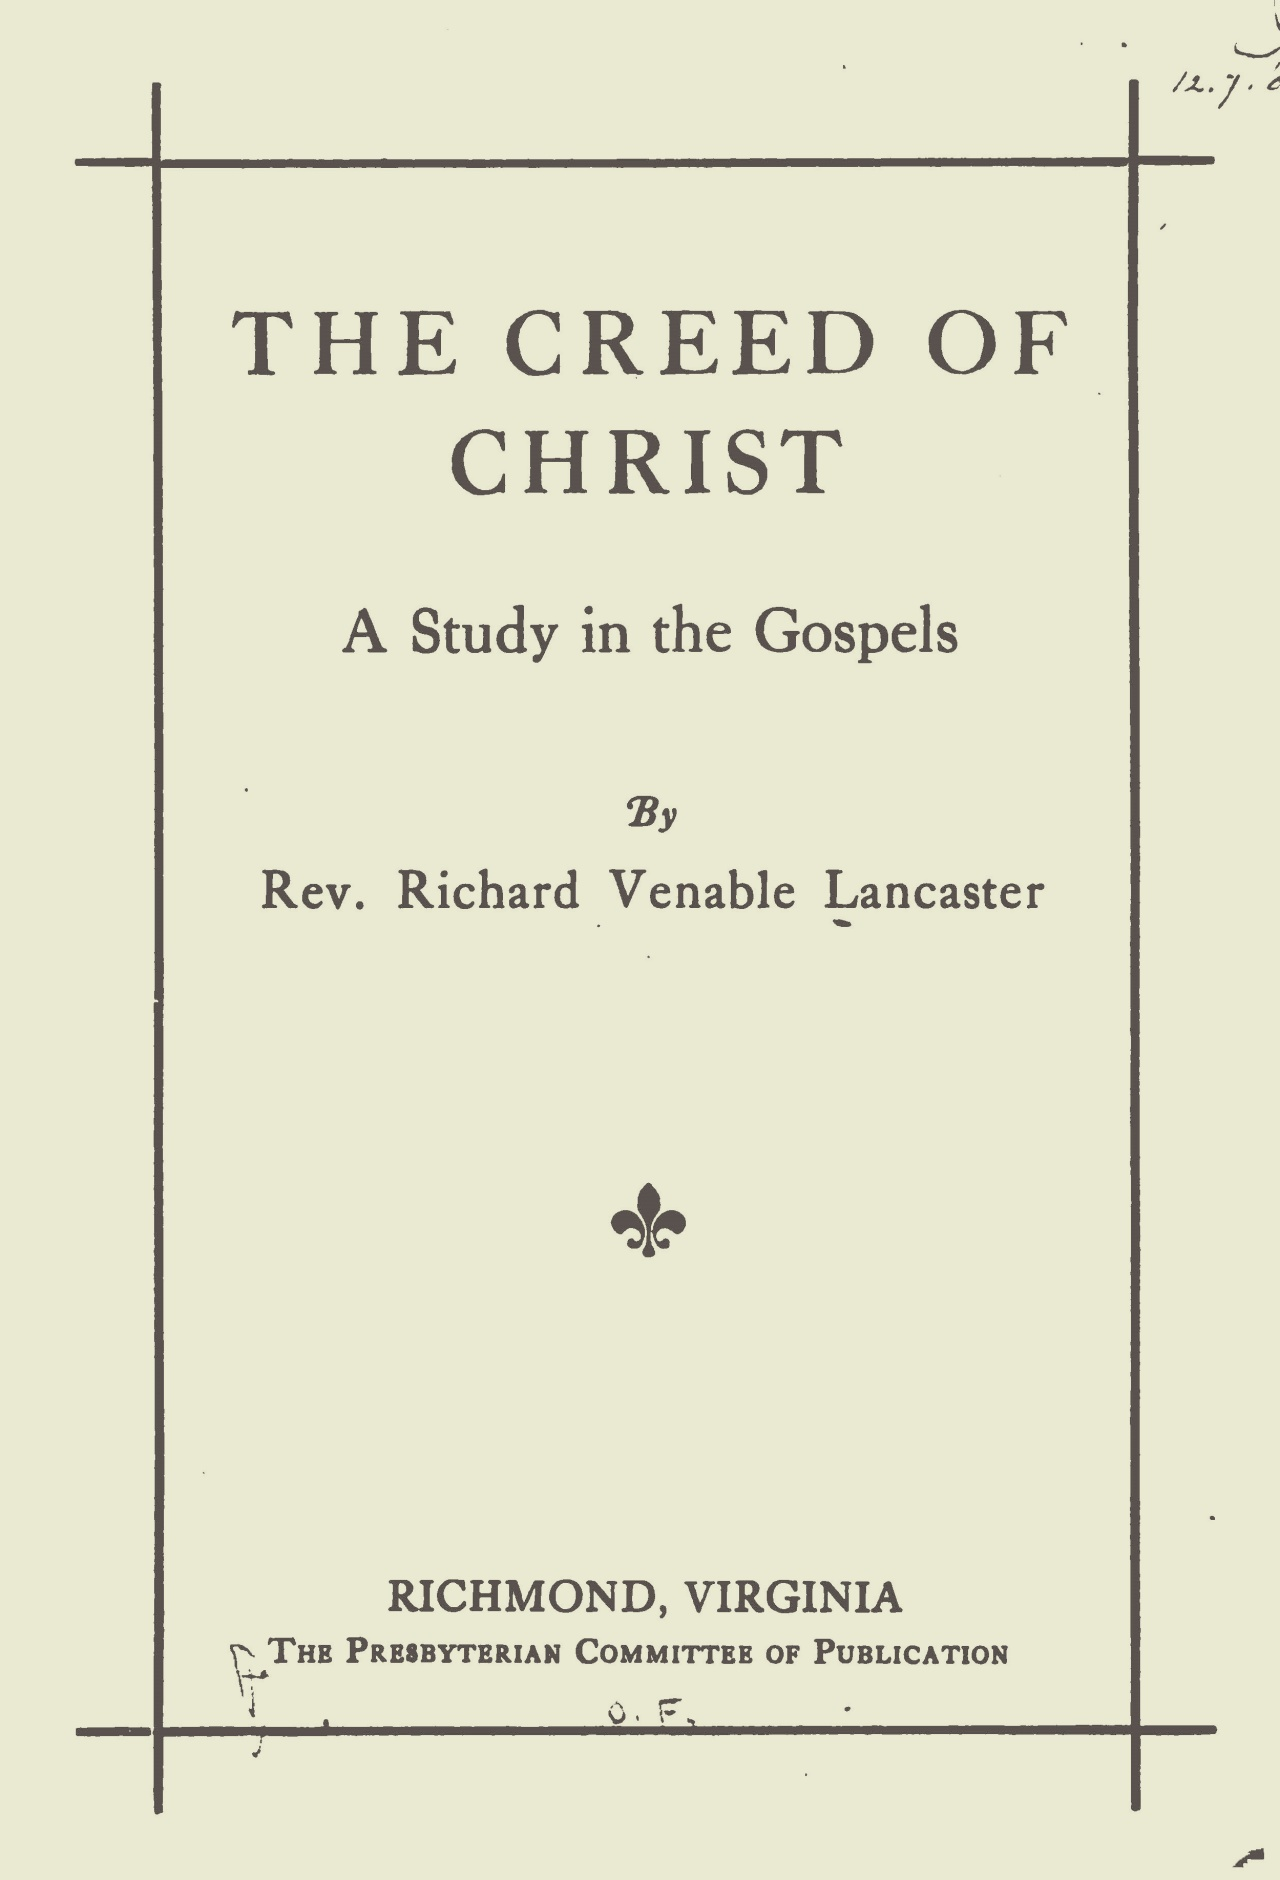 Lancaster, Richard Venable, The Creed of Christ Title Page.jpg